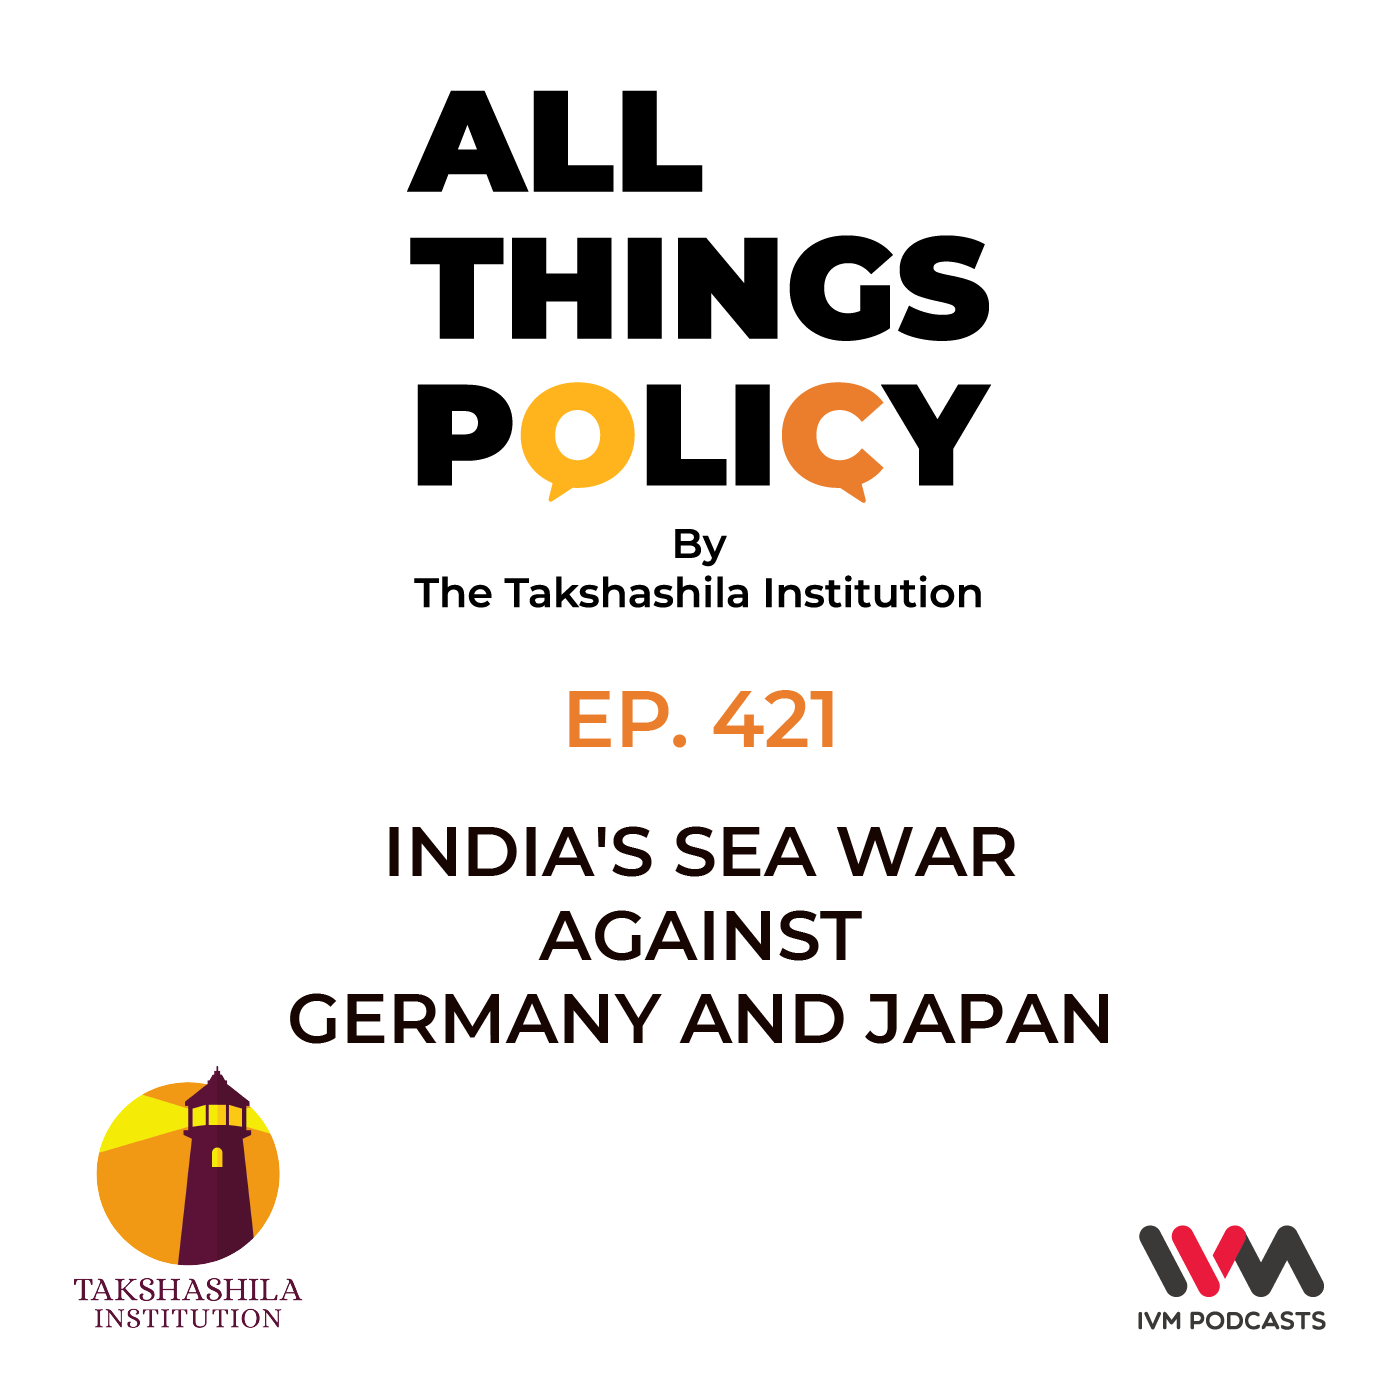 Ep. 421: India's Sea War Against Germany and Japan